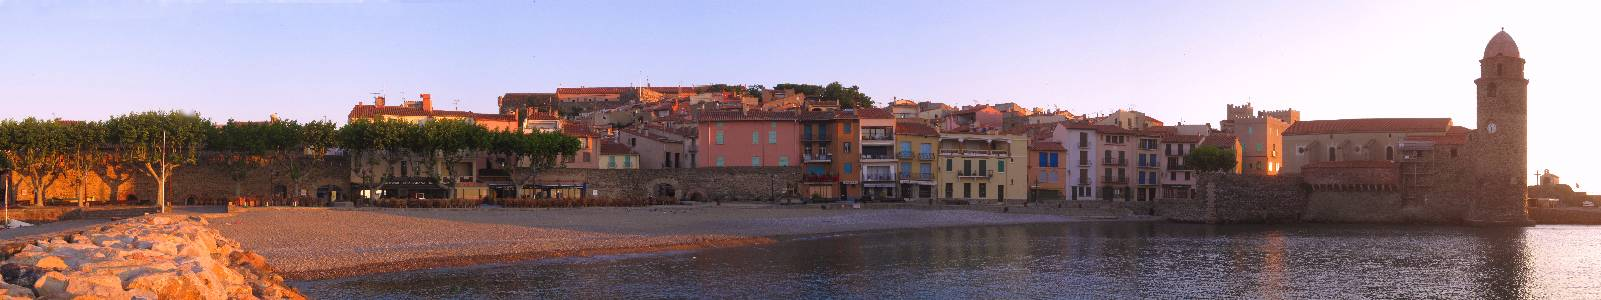 Name: Collioure panorama Camera make: Canon   Model: Canon   Software: DoubleTake-2.2.4